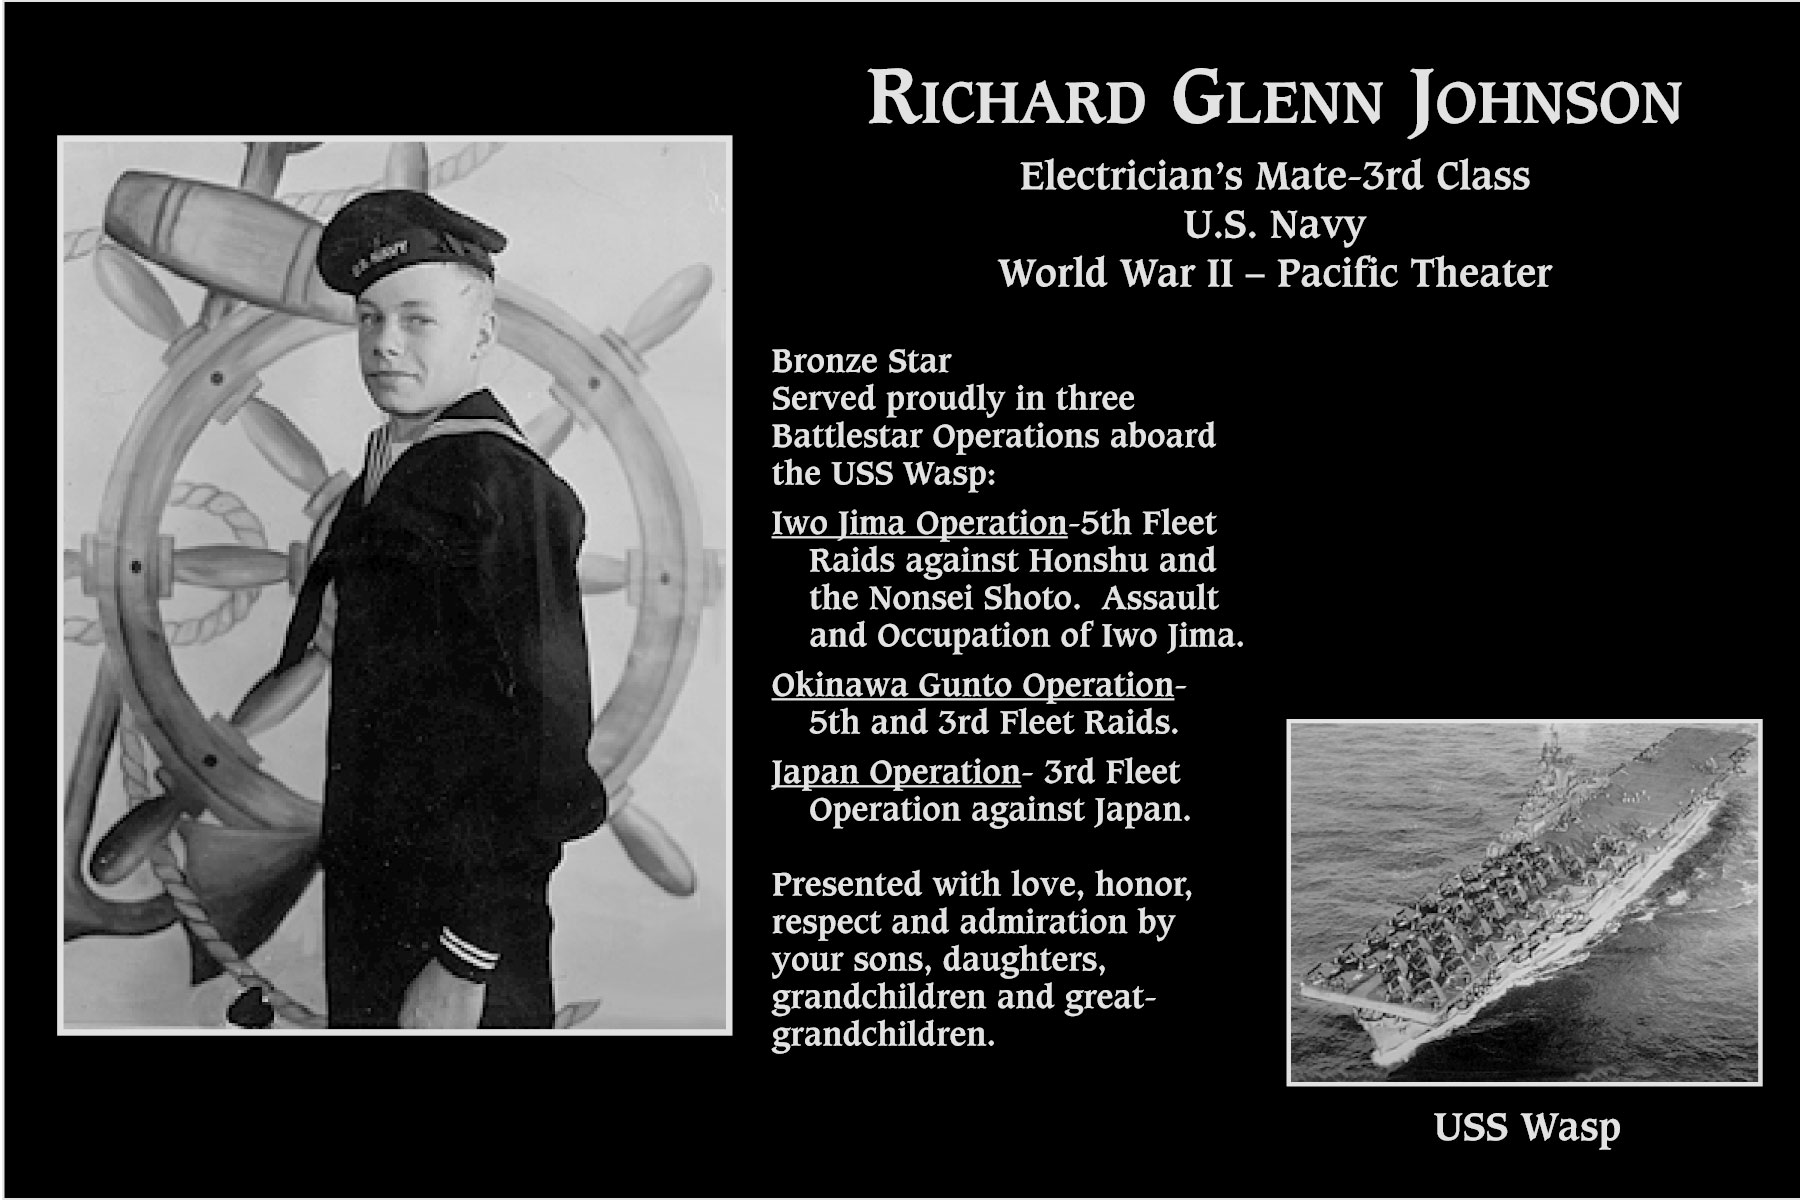 Richard Glenn Johnson